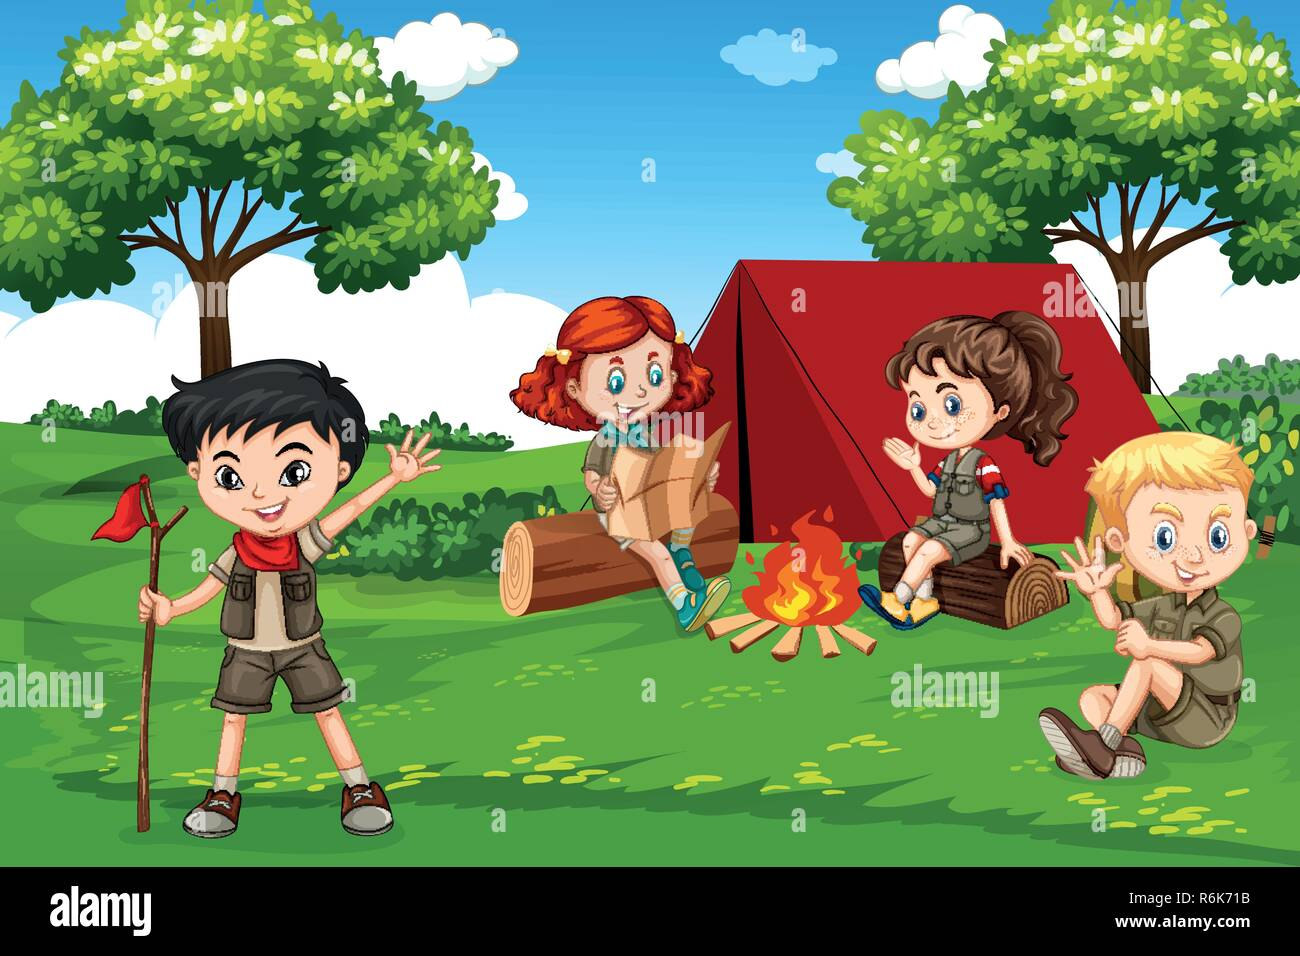 Children camping in nature illustration - Stock Vector